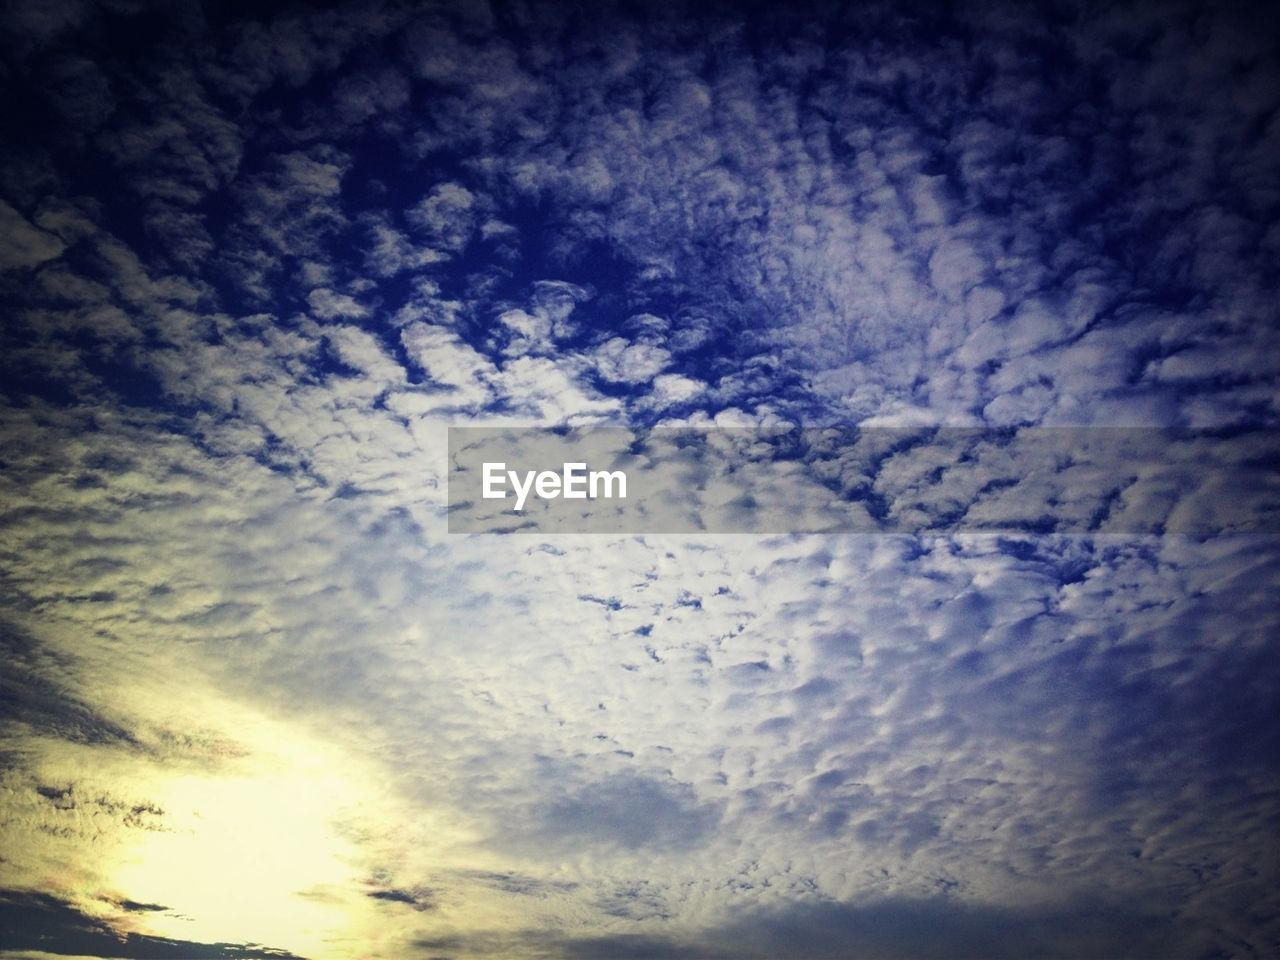 cloud - sky, beauty in nature, sky, nature, cloudscape, low angle view, sky only, scenics, backgrounds, heaven, majestic, awe, no people, dramatic sky, tranquility, tranquil scene, outdoors, sunset, blue, day